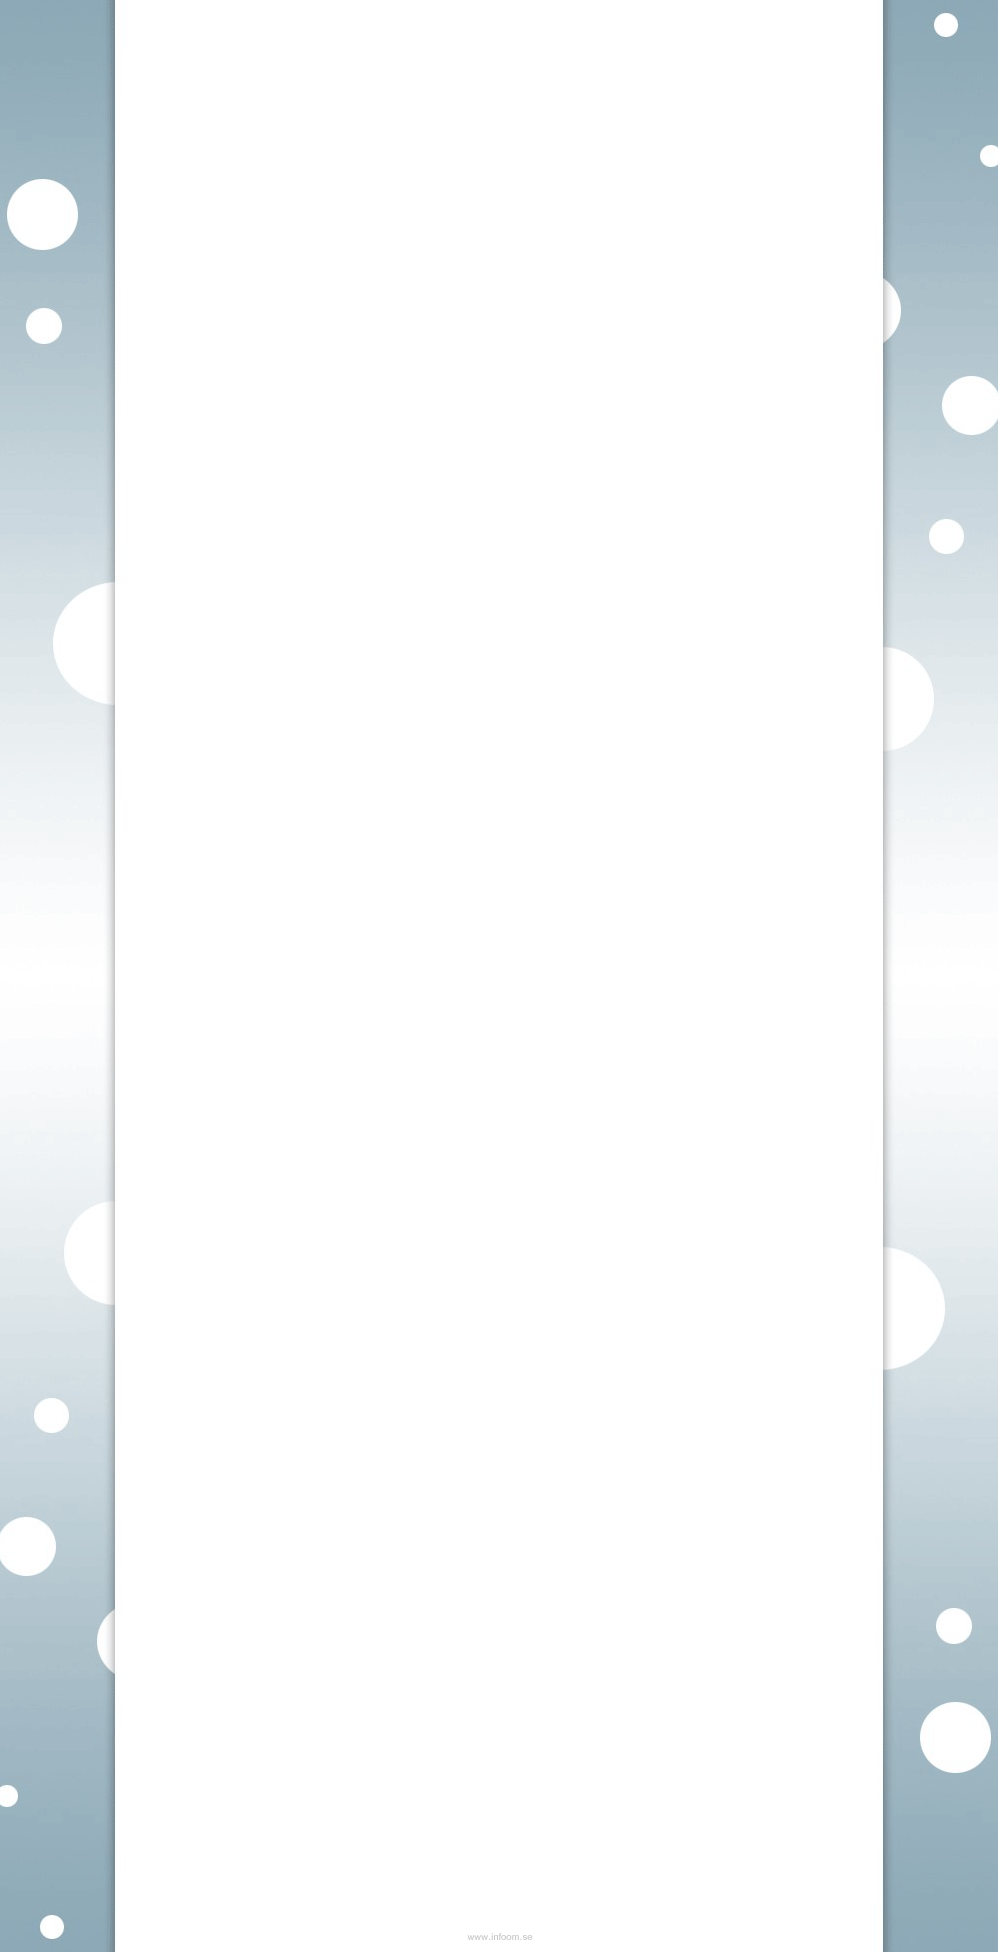 Name: light-white-blue-circle-design-gradient_y_8da9b7_top_center__768_cirklar.png